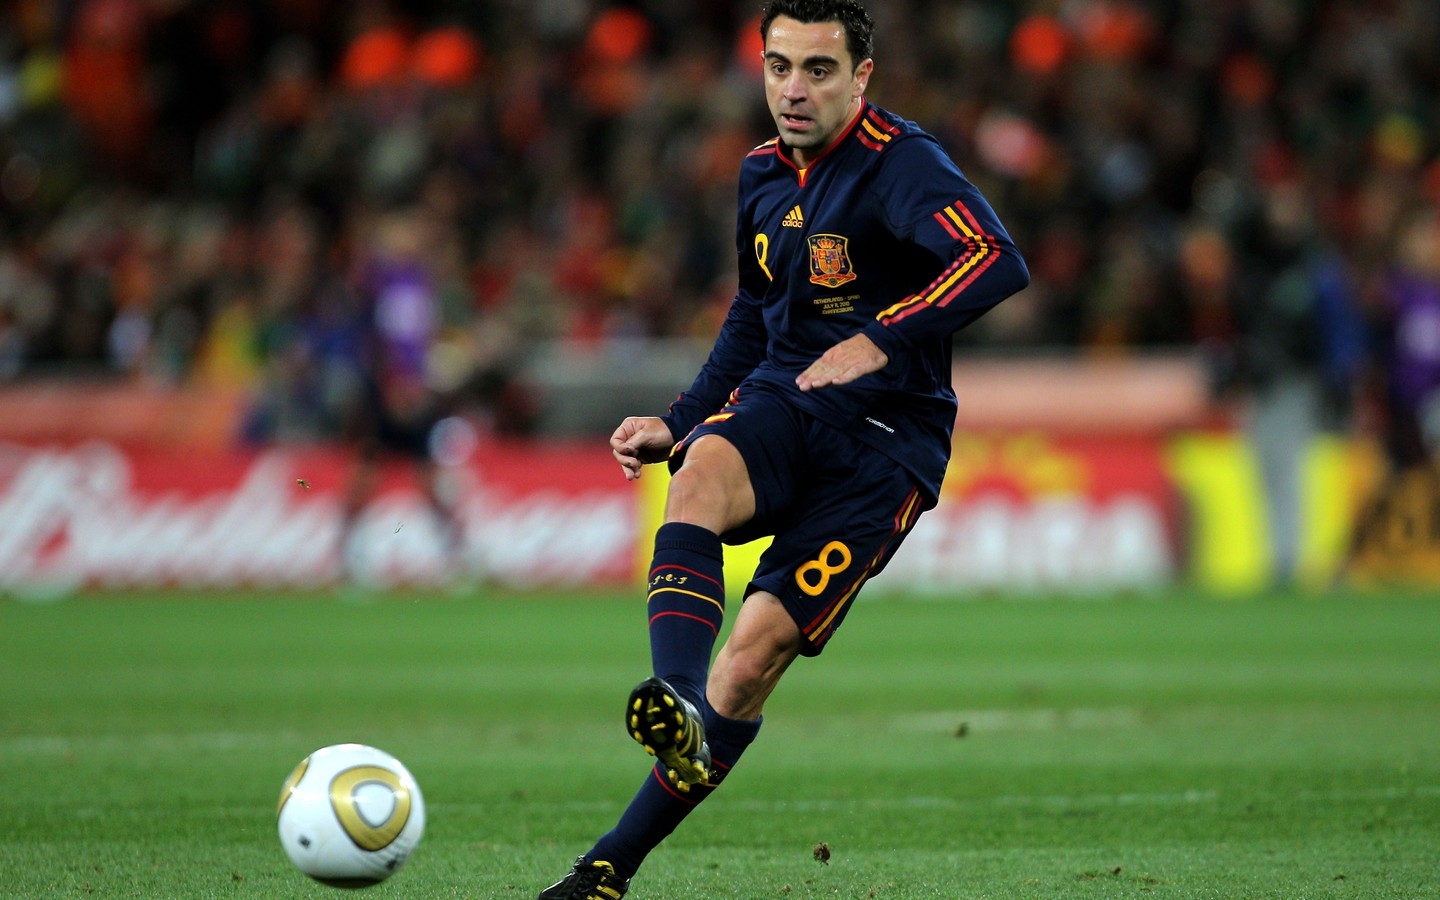 Spain national football team xavi hernandez soccer 1440x900